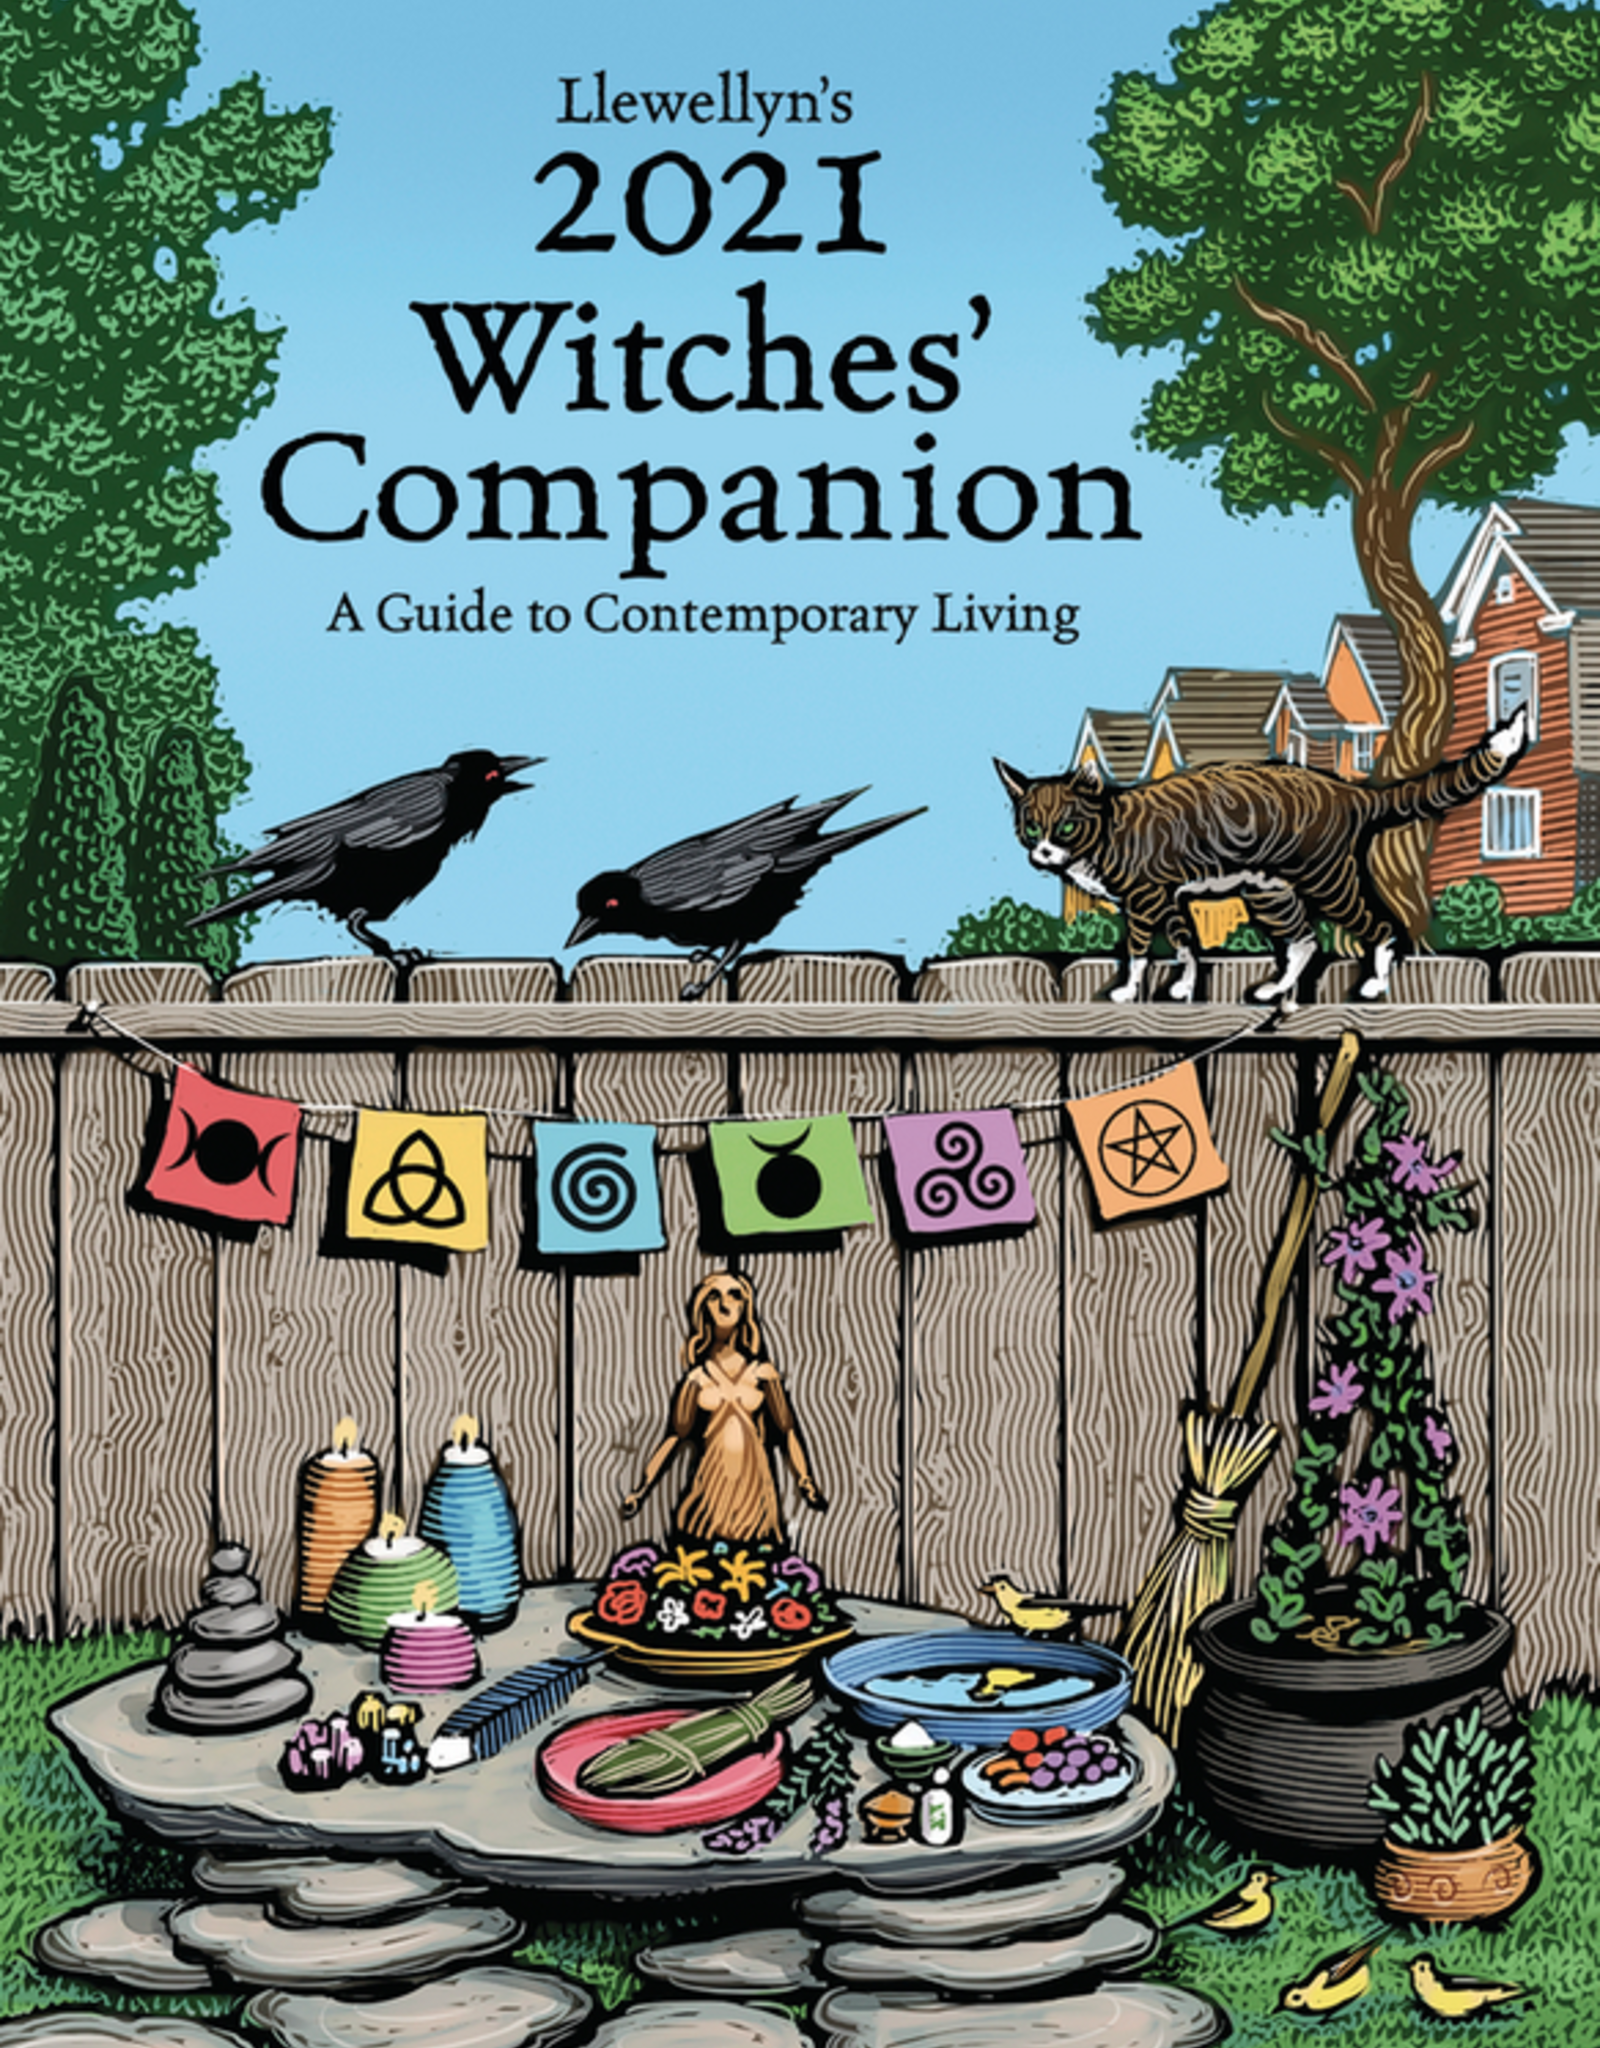 Llewelyn Llewellyn's 2021 Witches' Companion